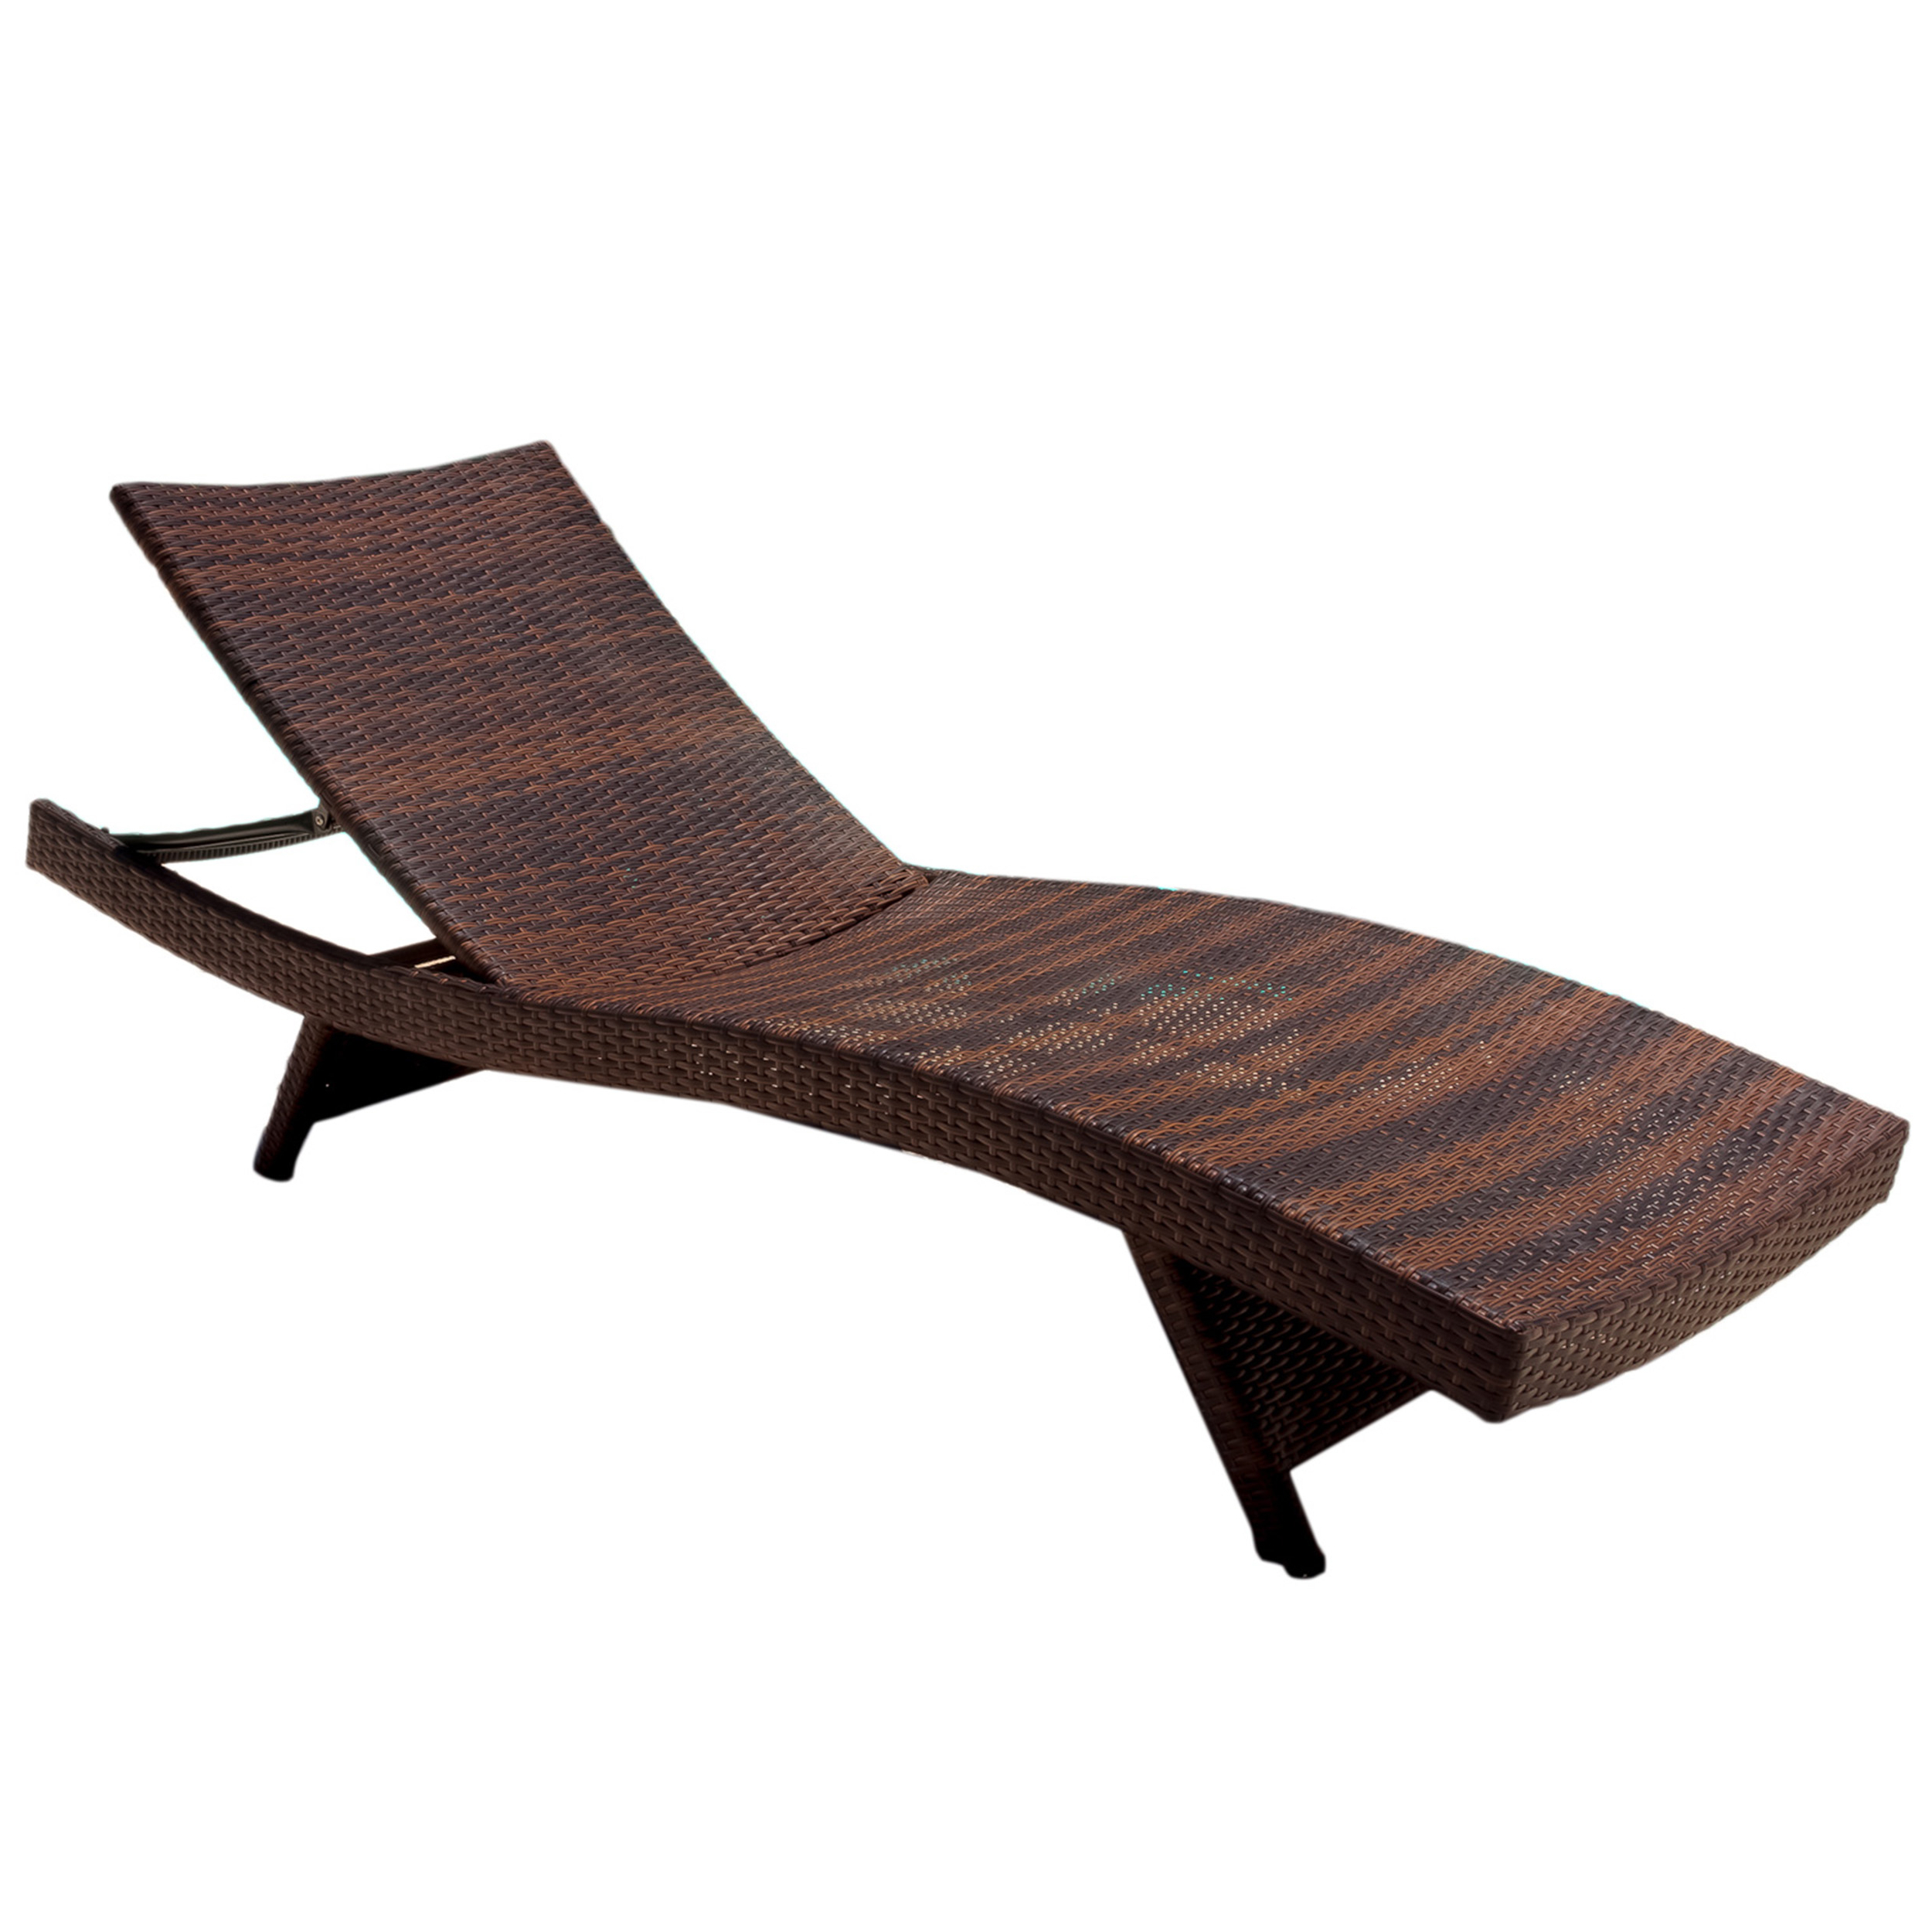 Newest Garden Furniture Rattan Adjustable Delightful Outsunny Patio Pertaining To Standard Size Chaise Lounge Chairs (View 25 of 25)